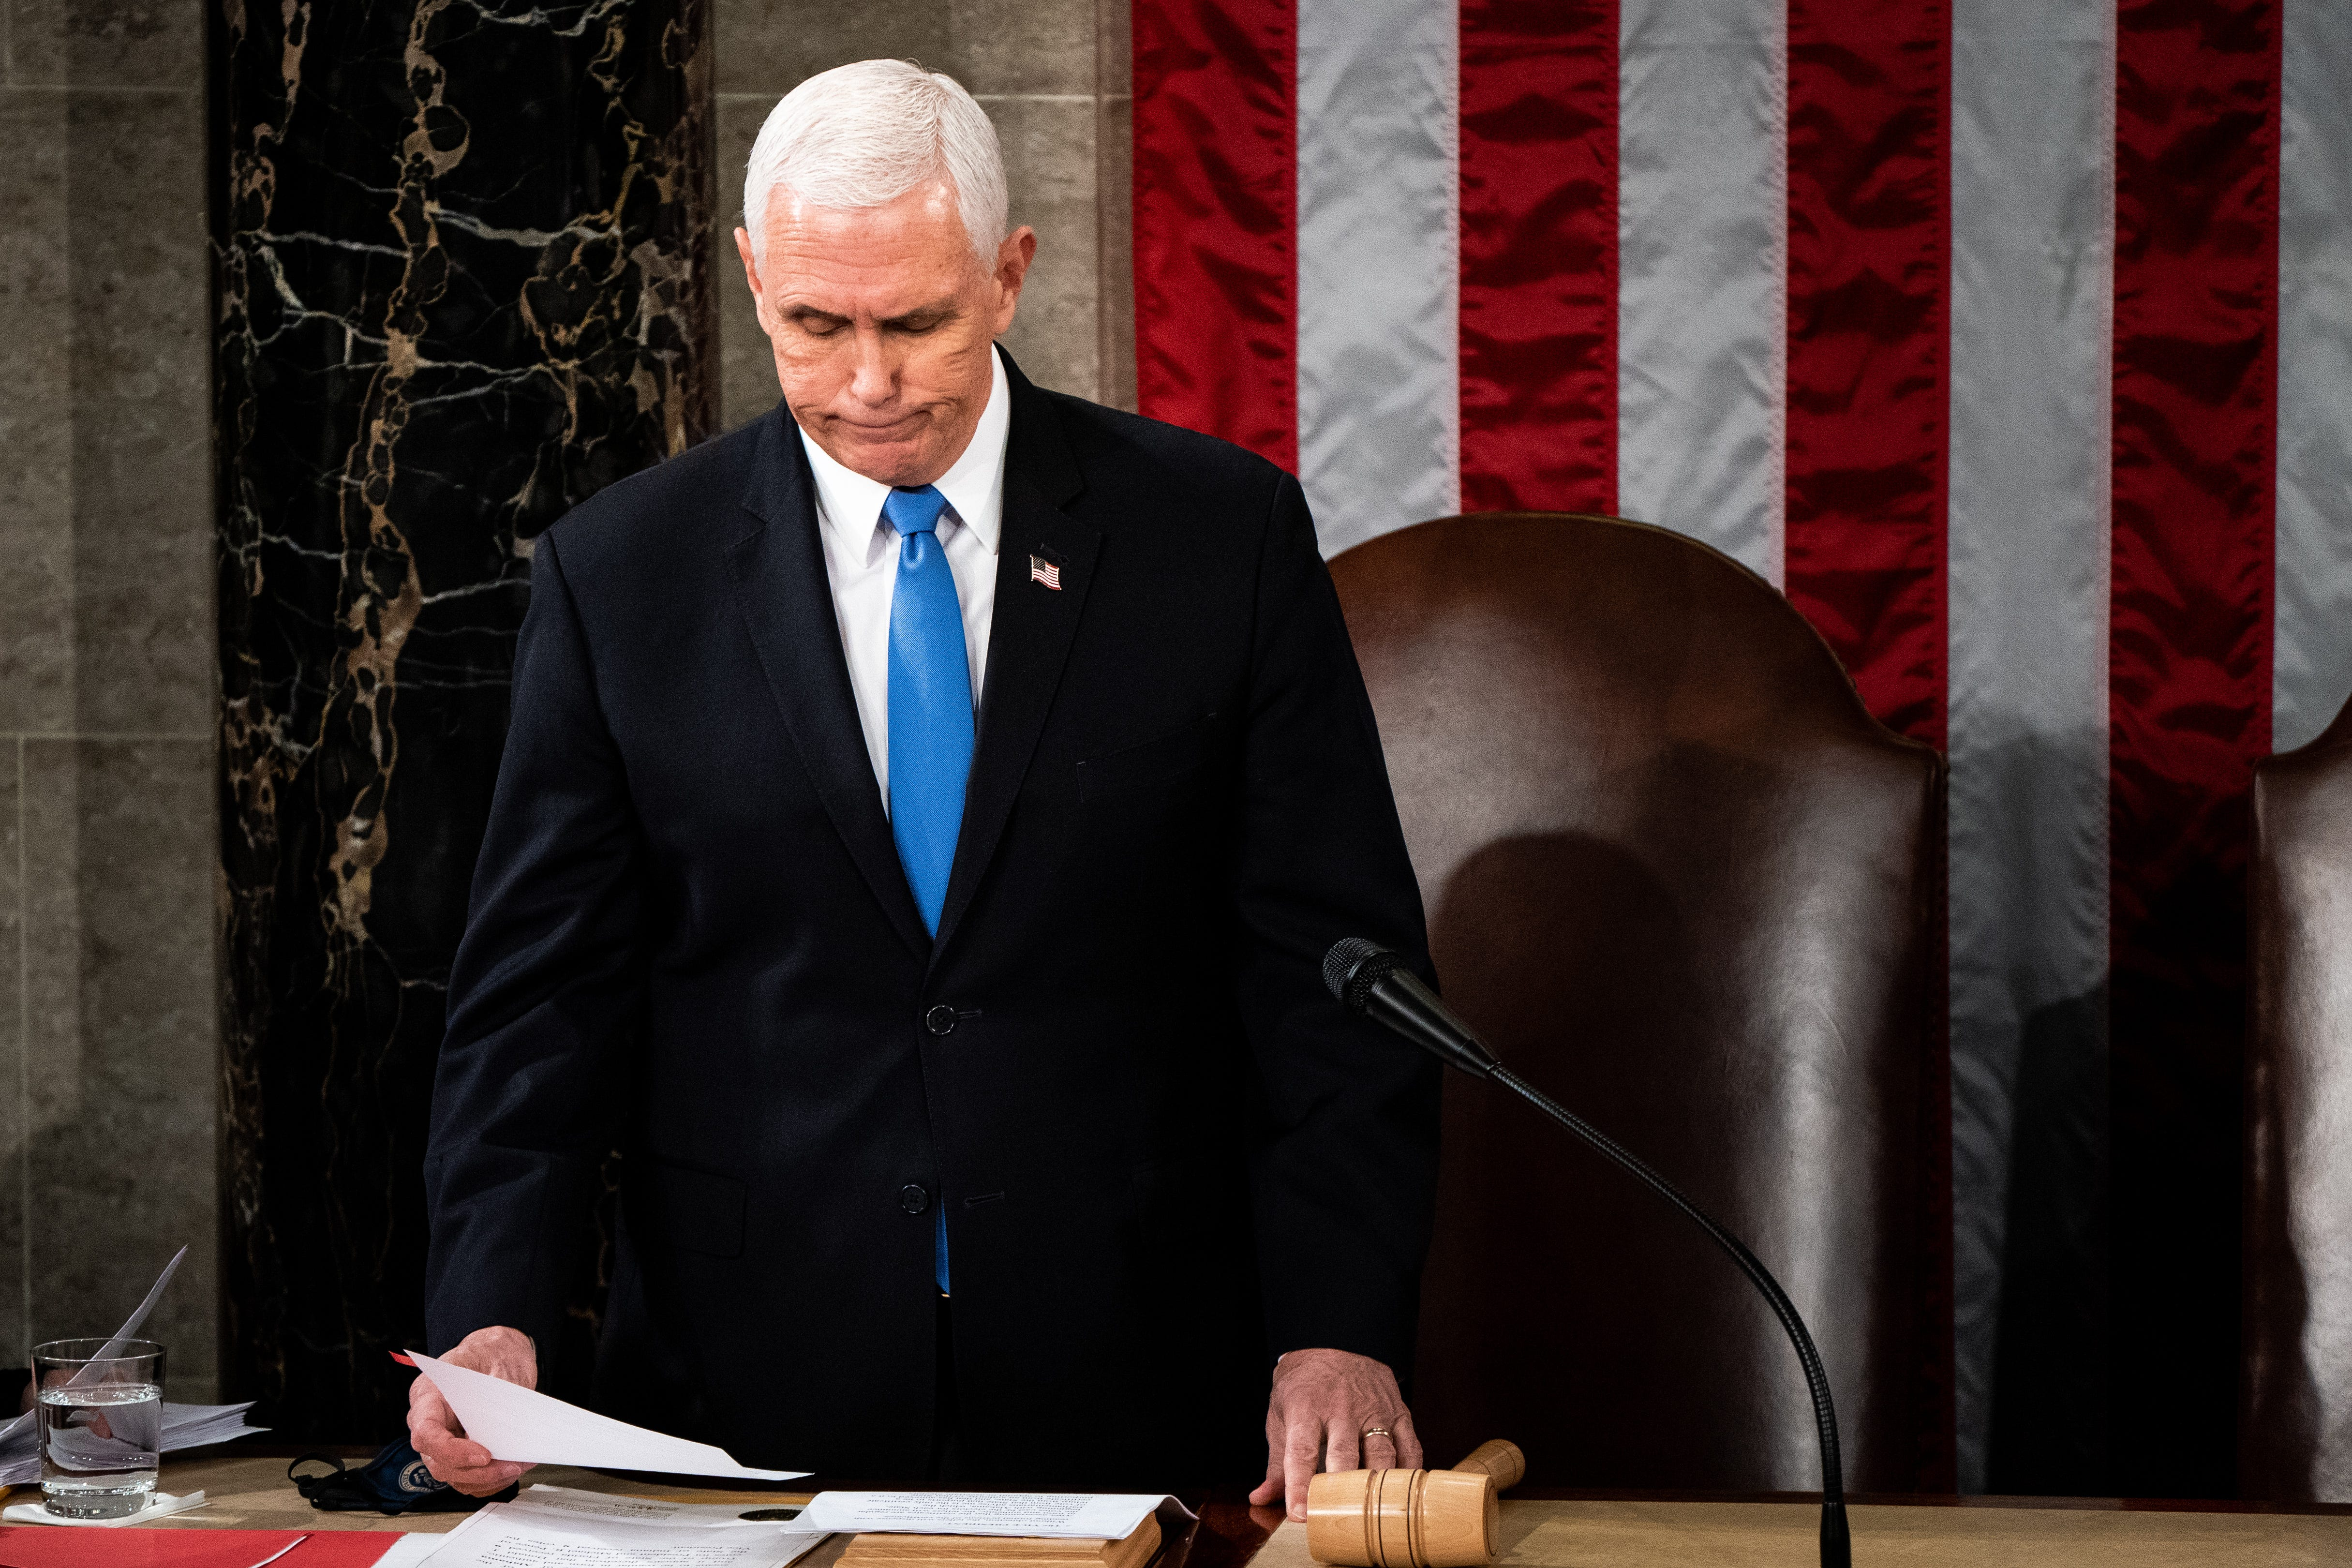 Mike Pence doesn't have the guts to invoke the 25th Amendment